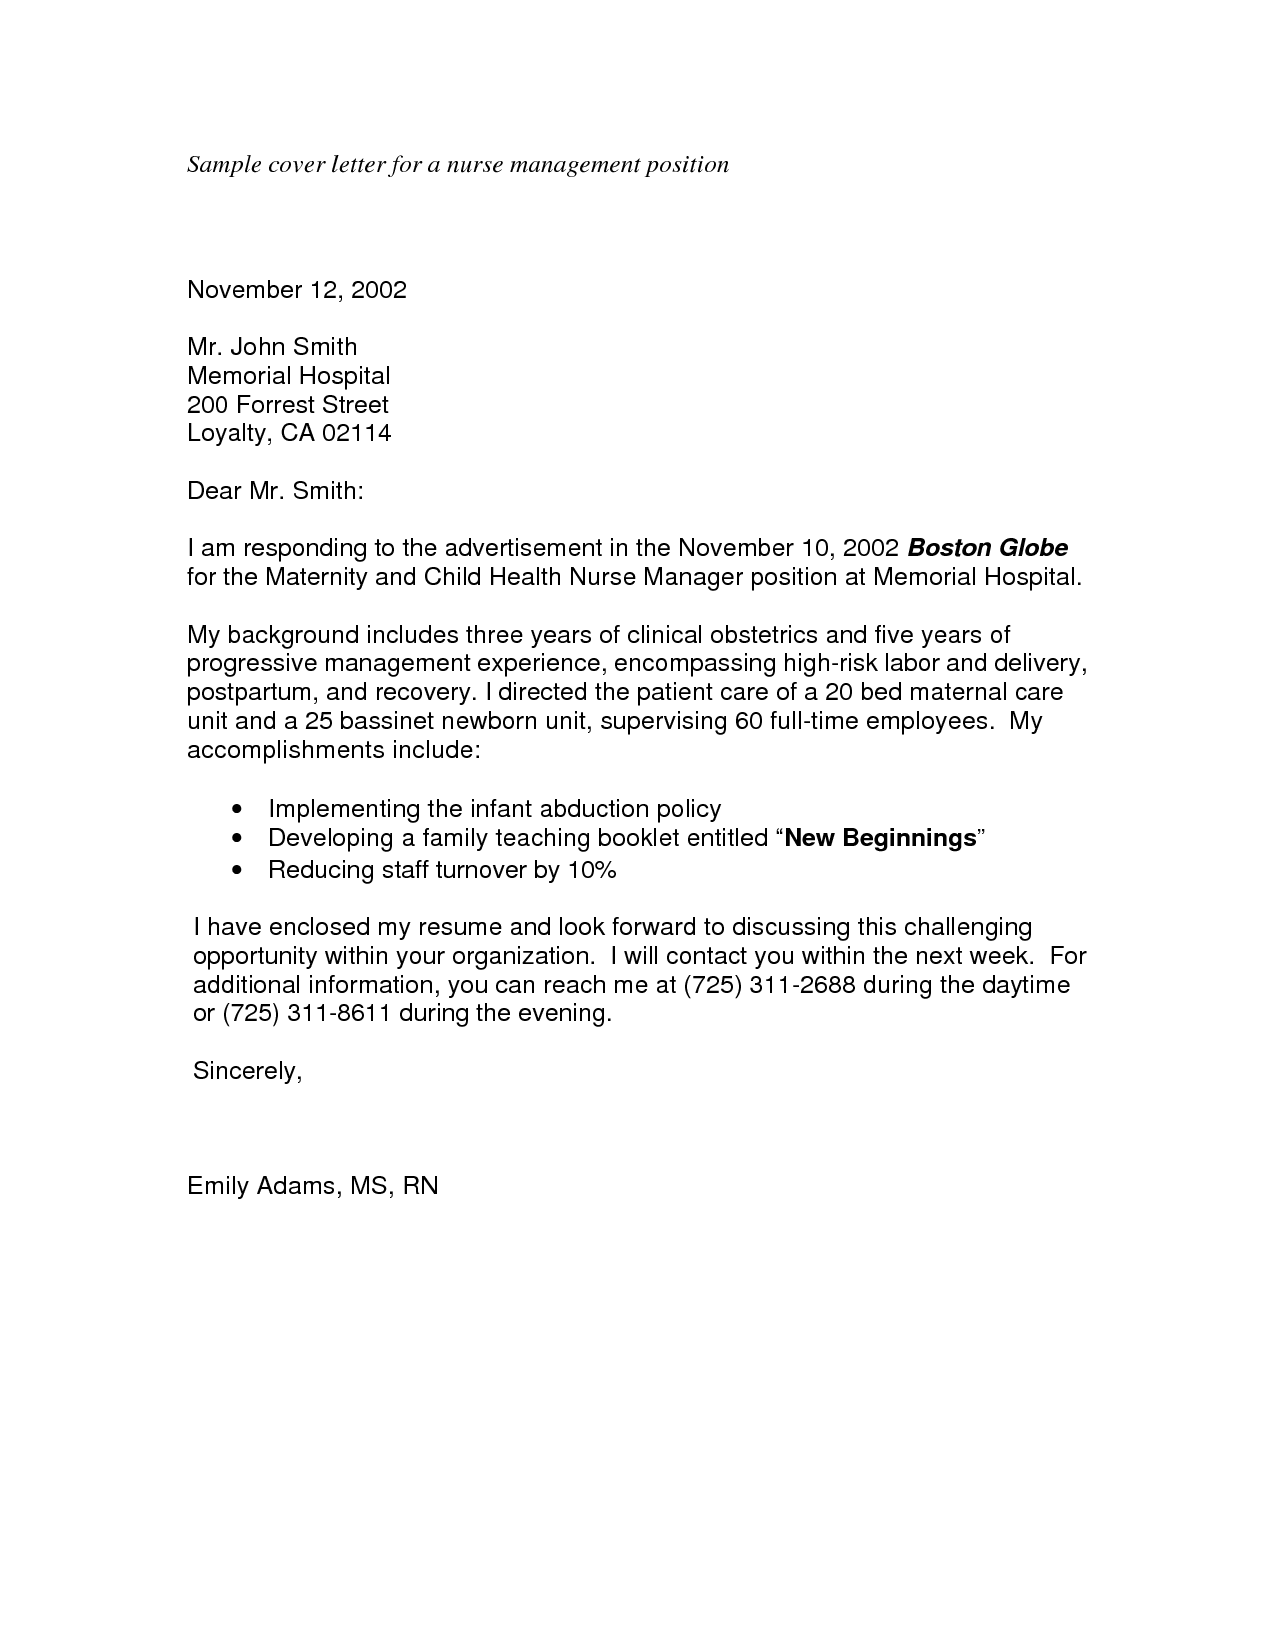 Sample cover letter for applying a job for Applying for management position cover letter